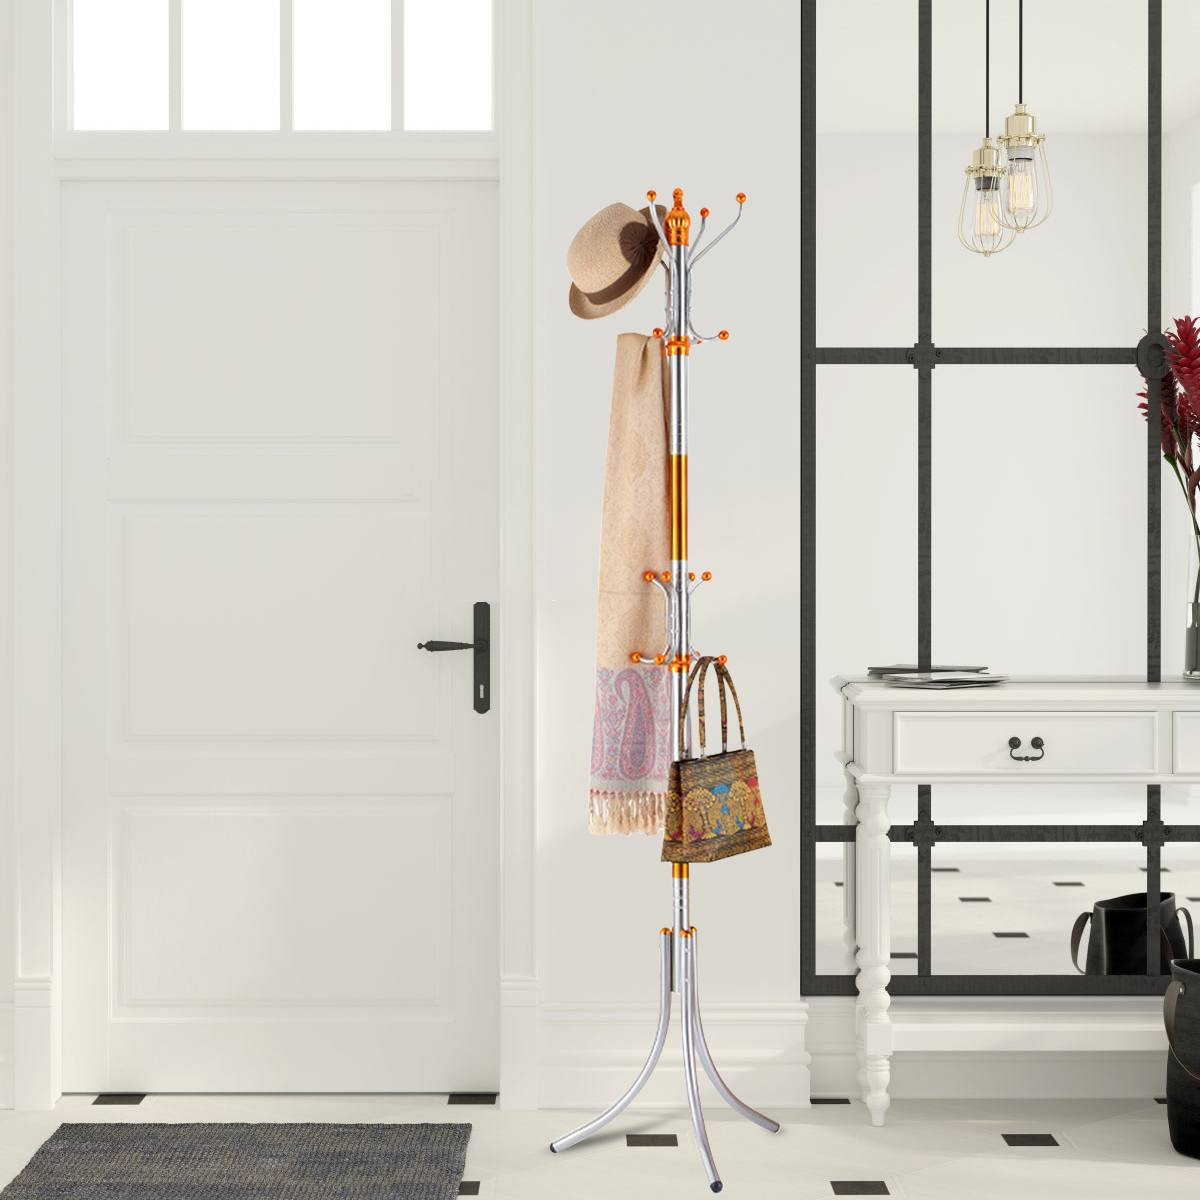 New Assembled Metal Hangers Living Room Hat Display Stand Floor Coat Rack Multi Hooks Clothes Hanger Bedroom Clothing Organizer-BUYALL20